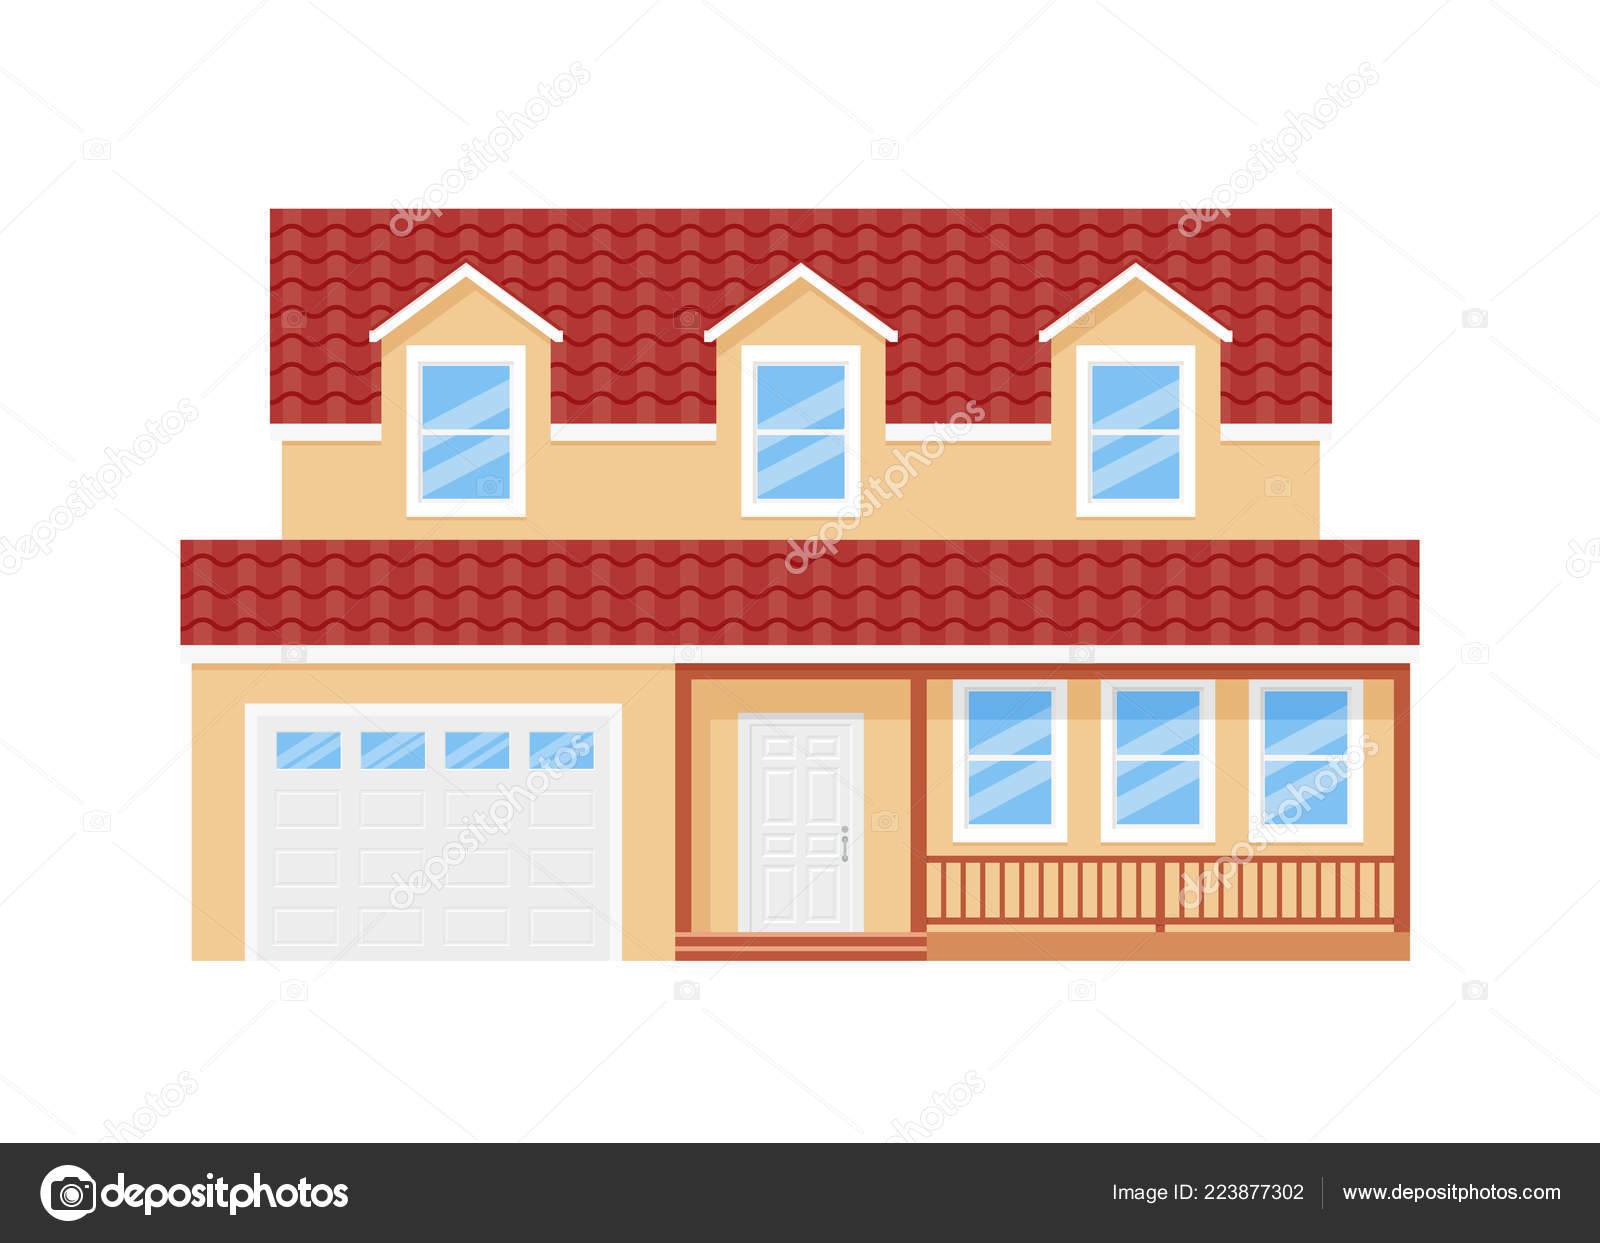 Design Of Houses Front View House Facade Vector Home Exterior Front View Building Door Roof Stock Vector C Maradaisy 223877302